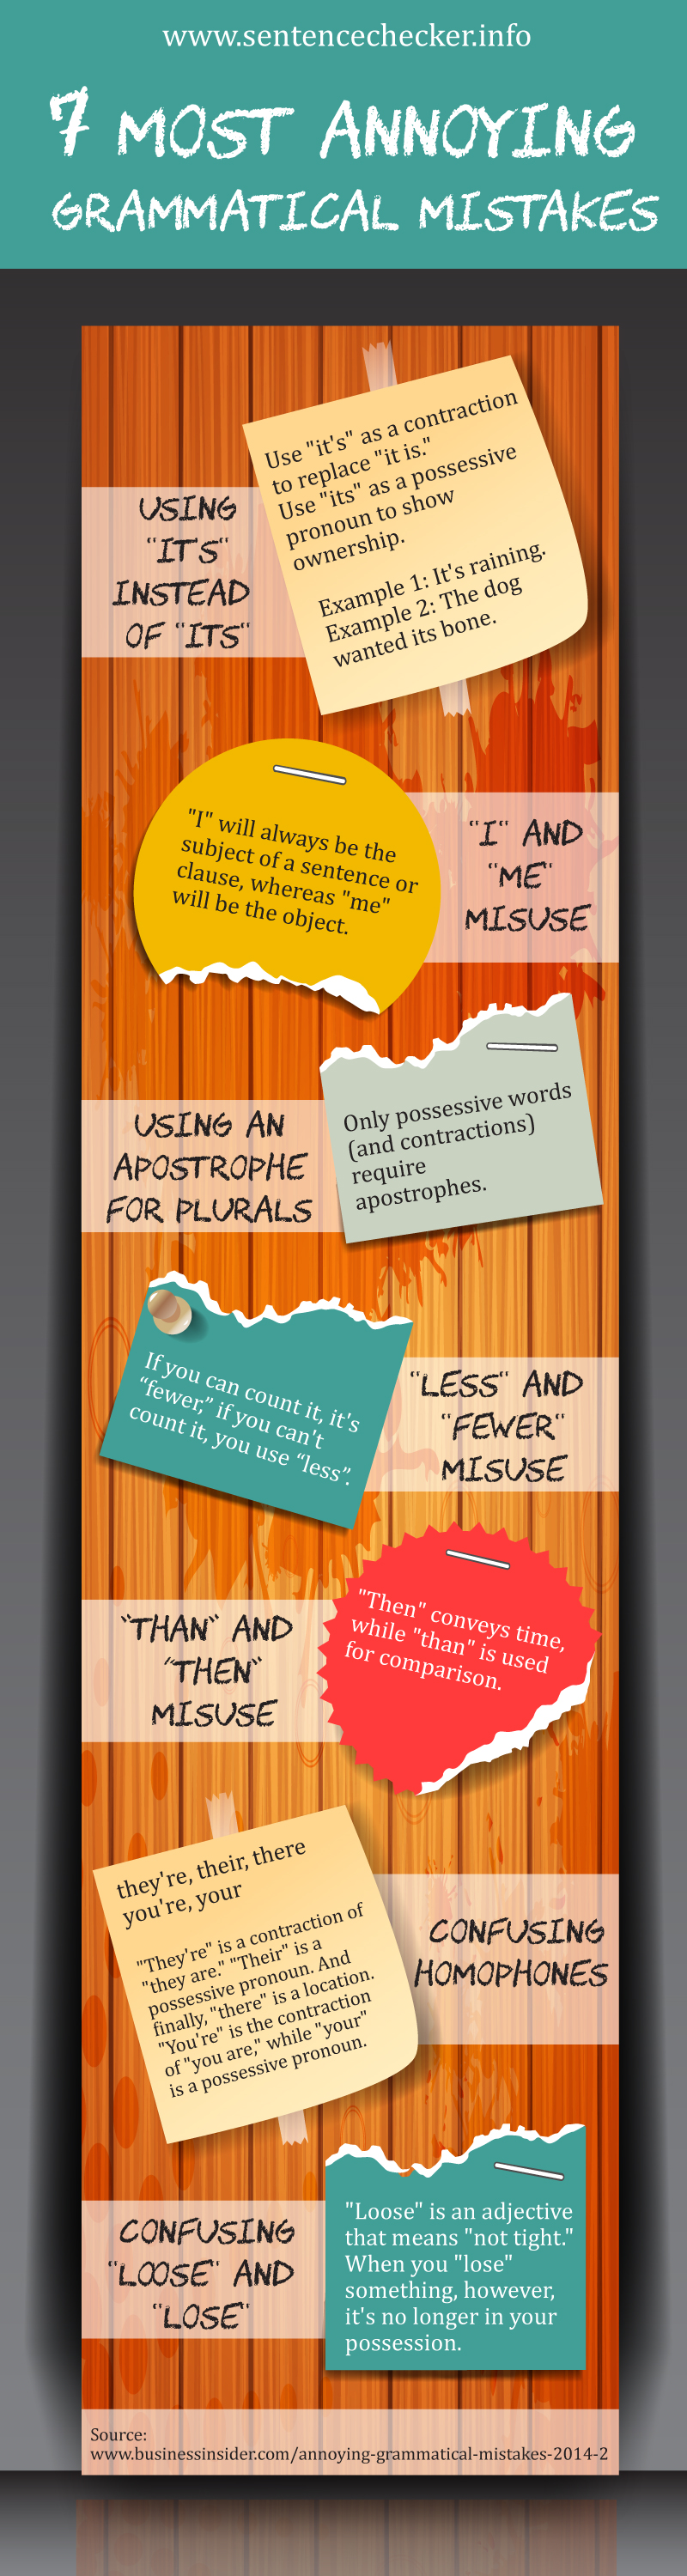 7 Most Annoying Grammatical Mistakes